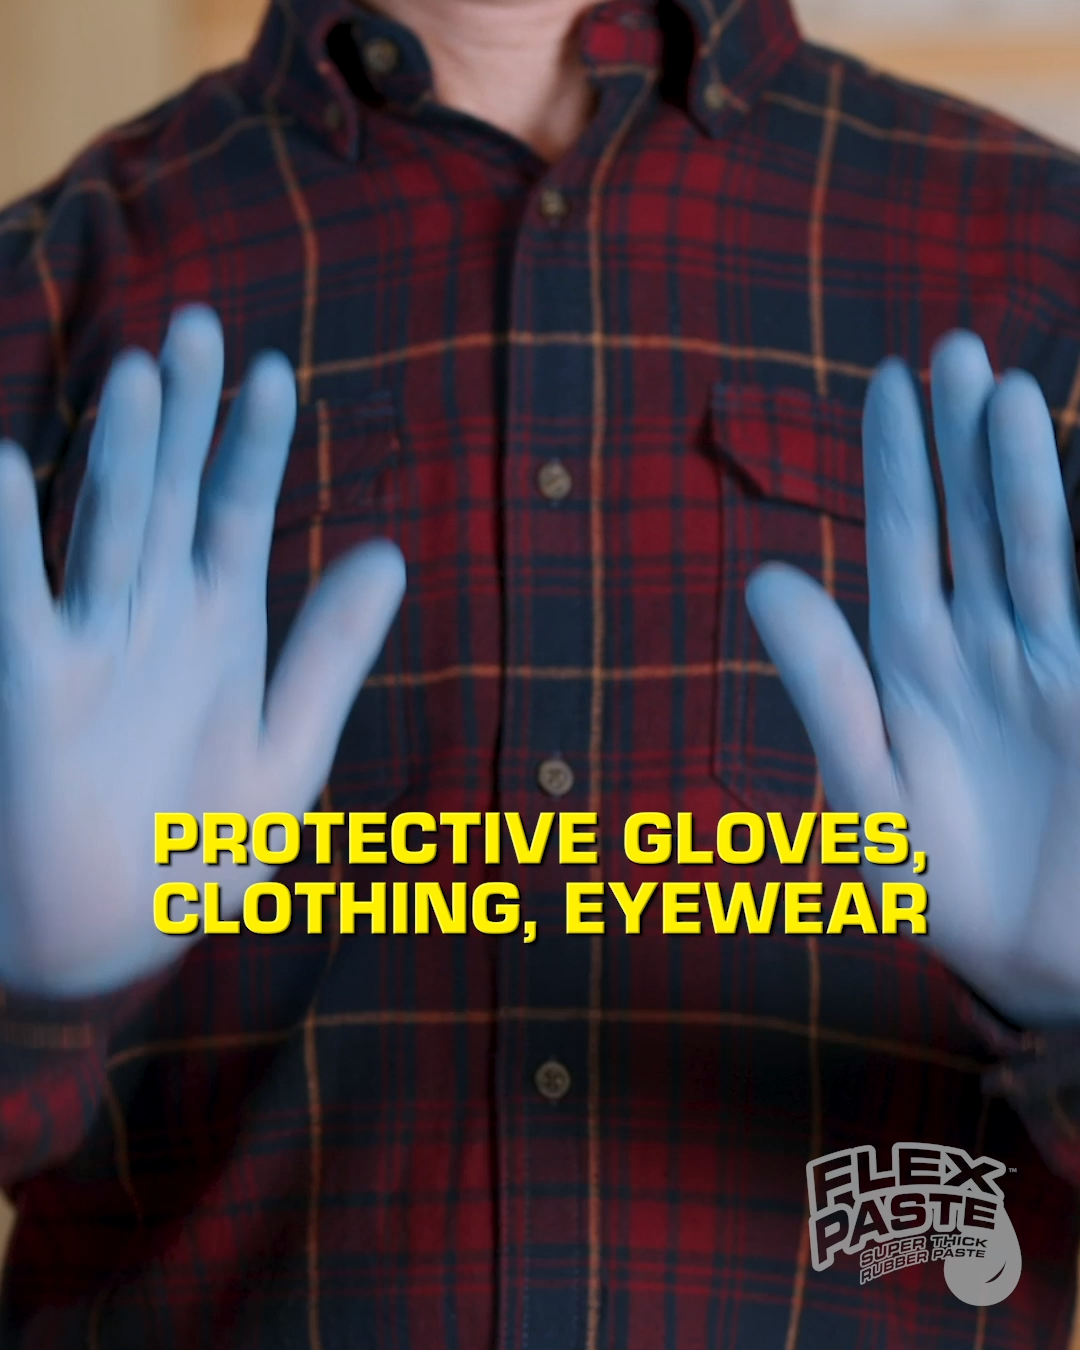 Flex Ed 101 How To Use Flex Paste Safety Tips Video In 2020 Flex Protective Gloves Safety Tips